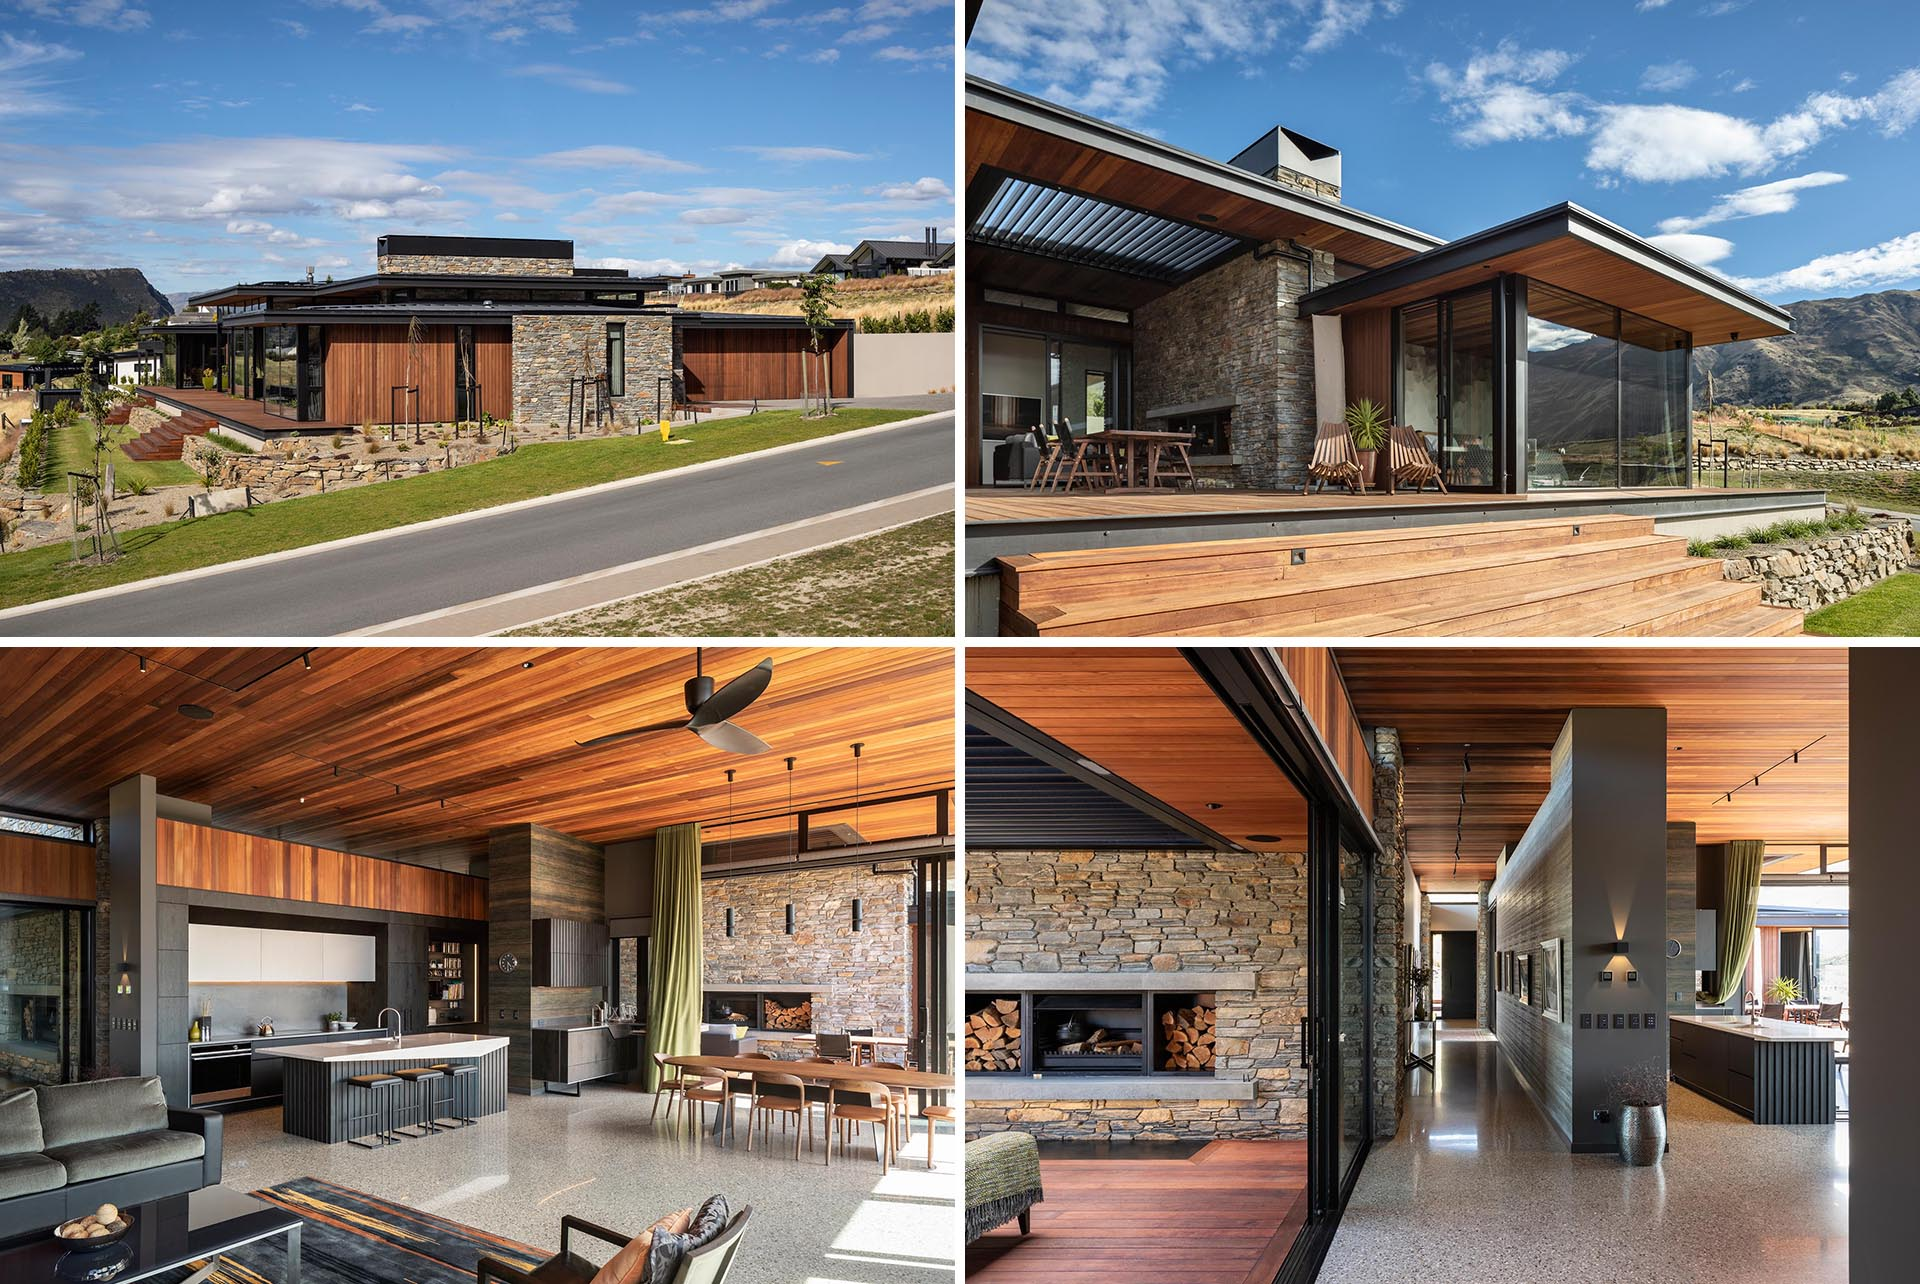 A modern home that includes low-slung roofs and deep eaves, and materials like stone, wood, and metal.